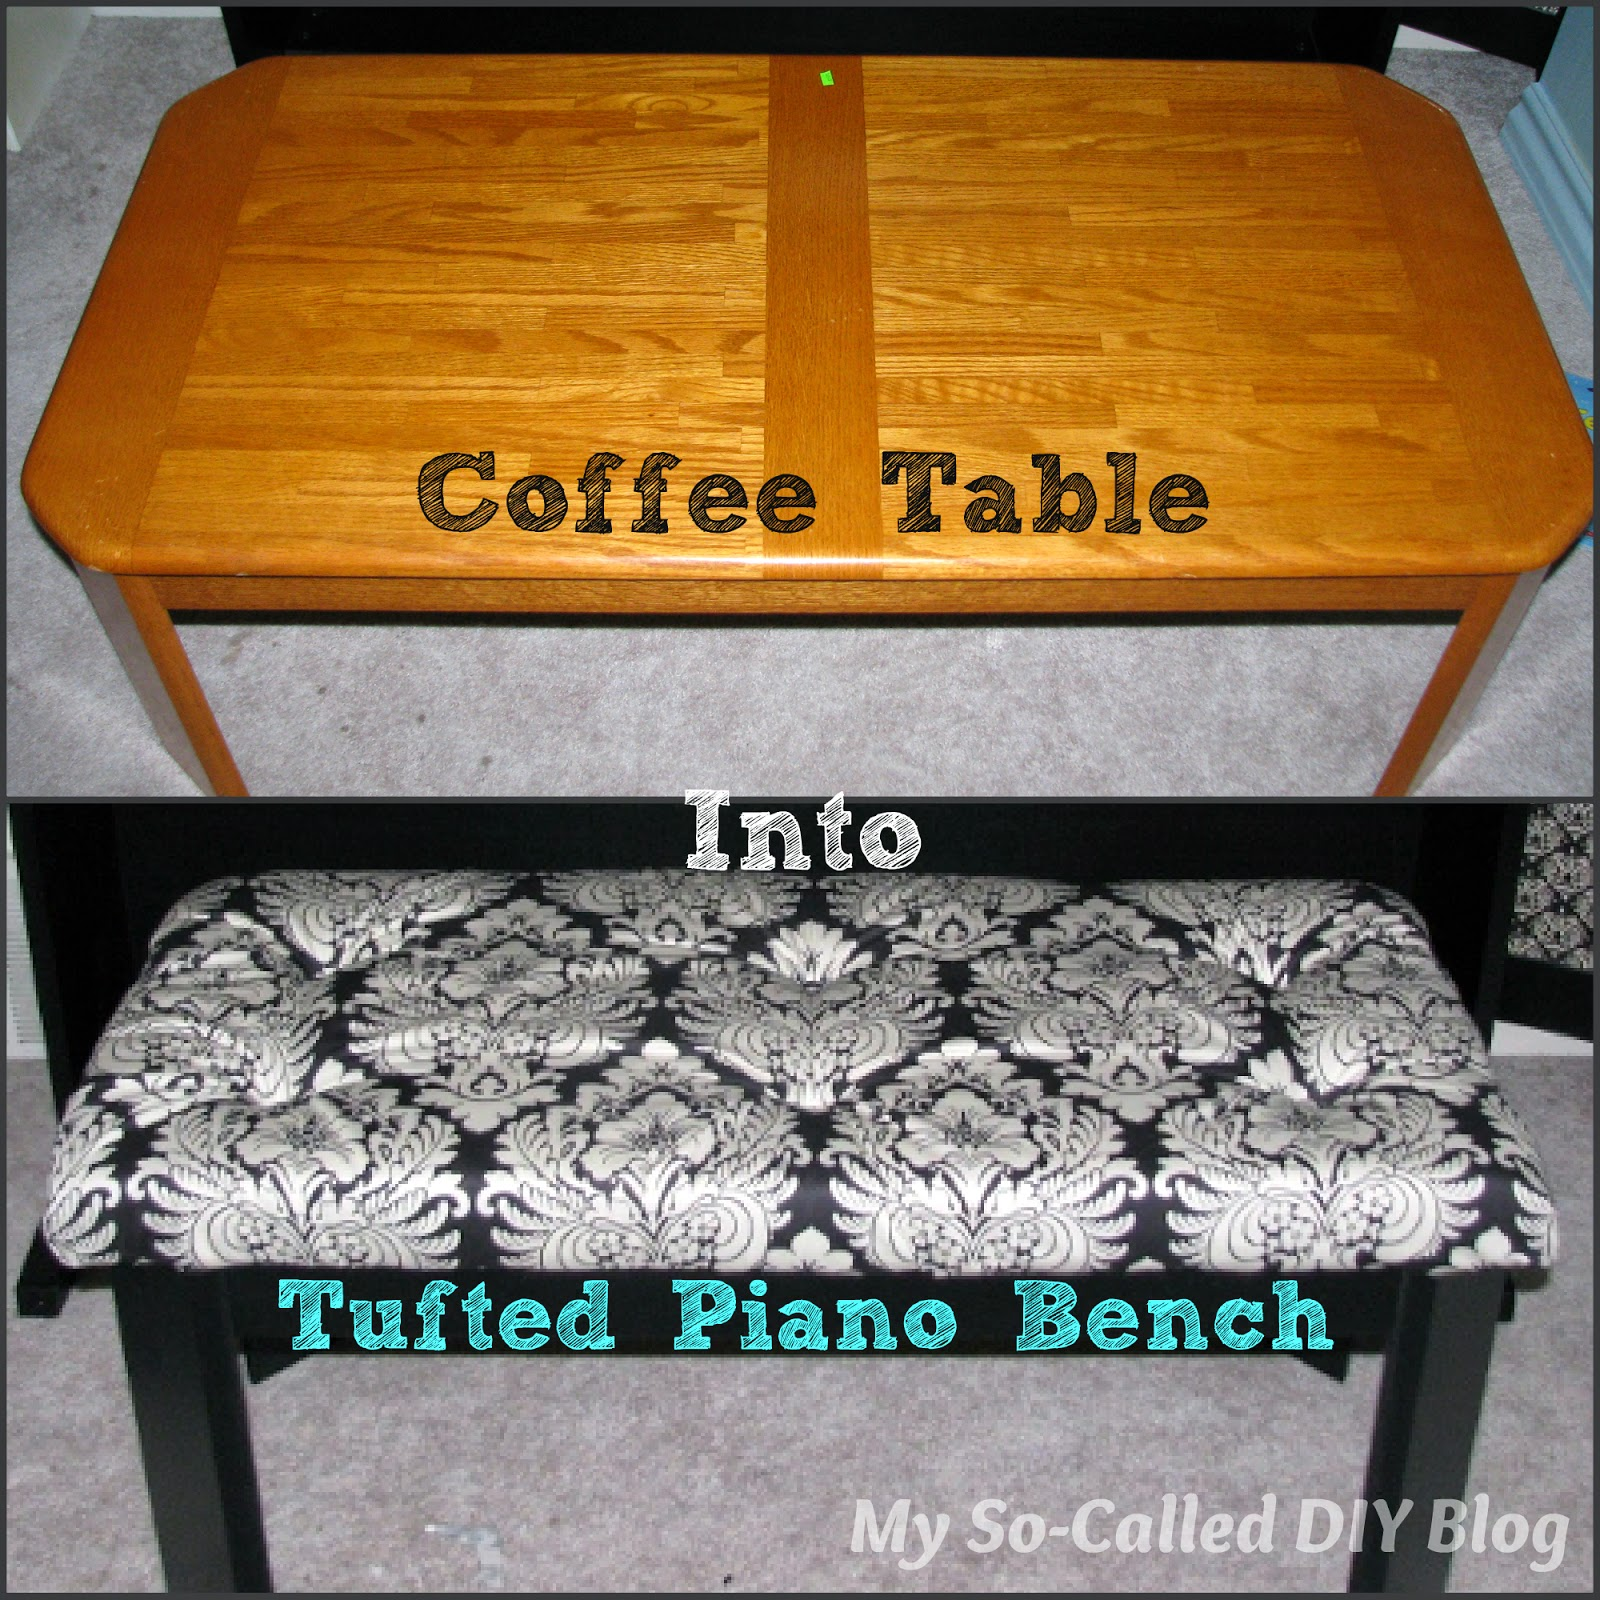 http://www.mysocalleddiyblog.com/2015/04/coffee-table-into-tufted-piano-bench.html